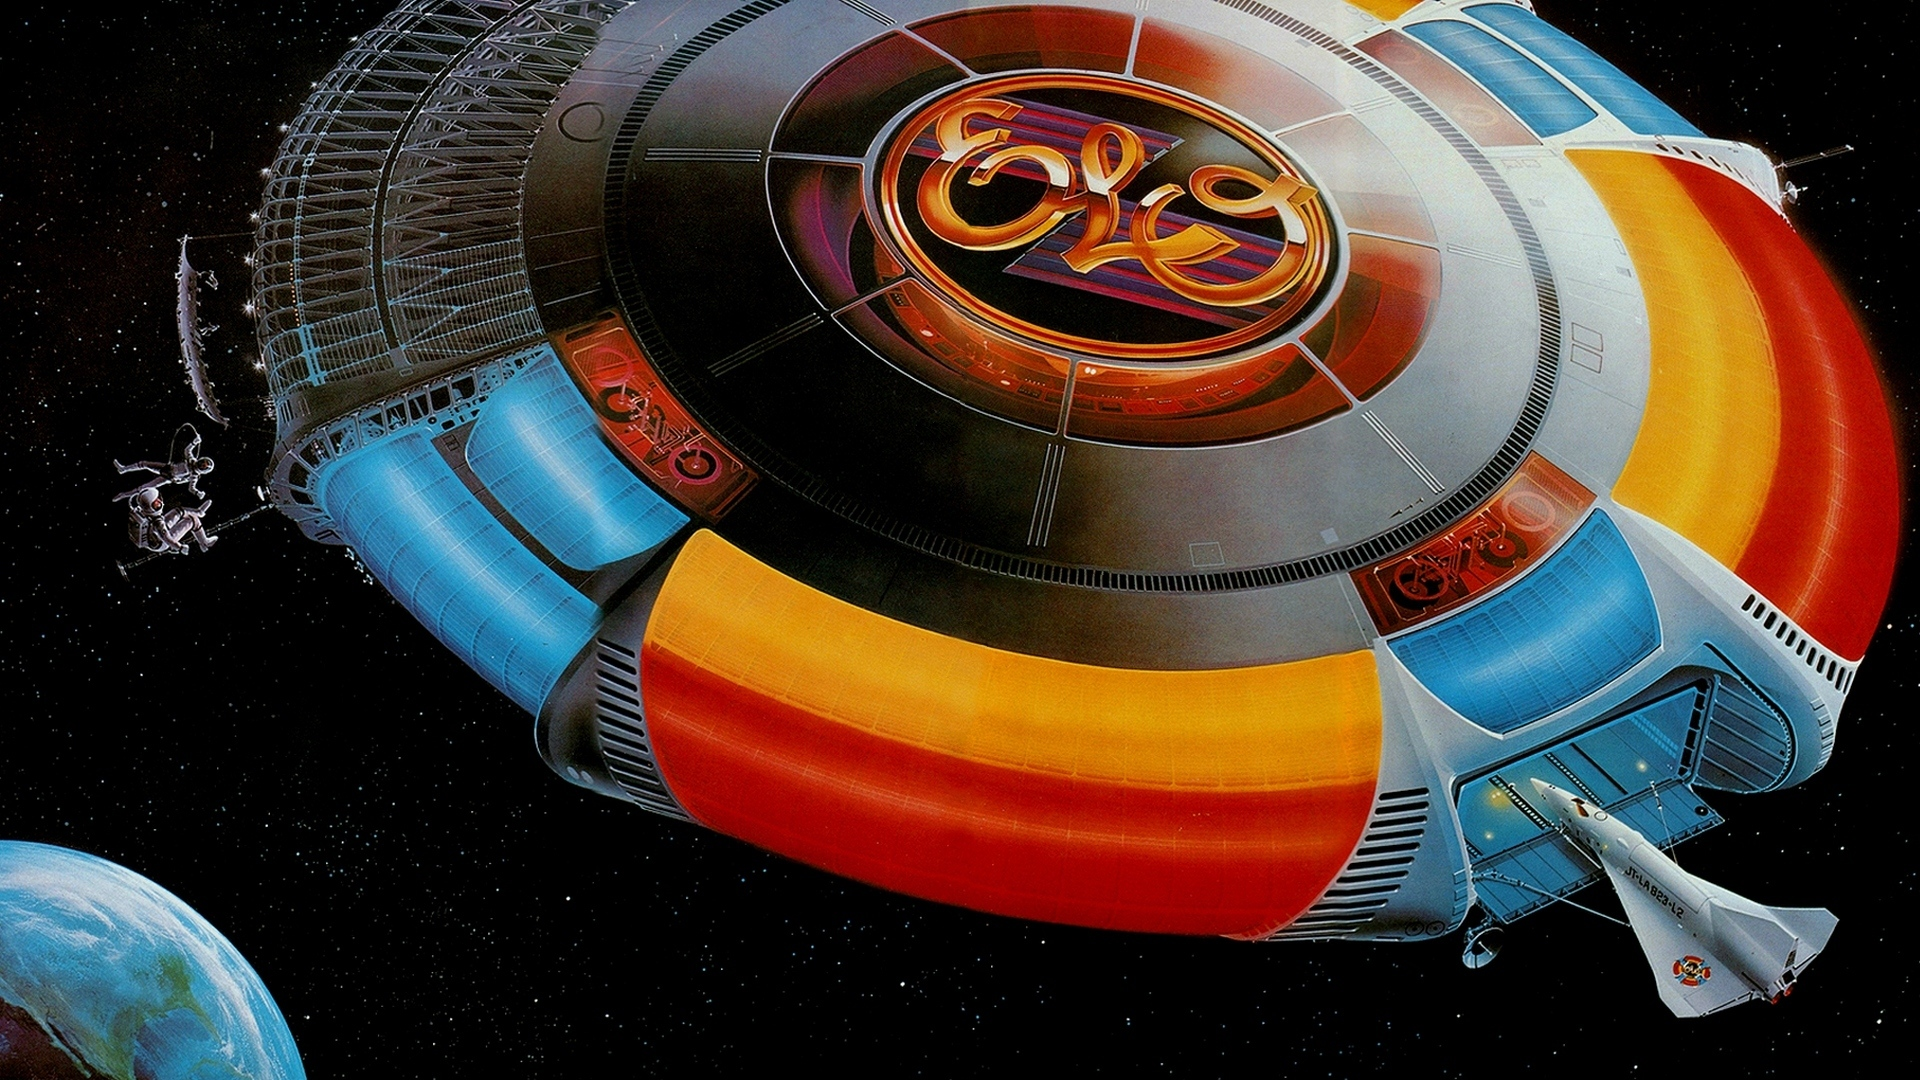 Livin' Thing av Electric Light Orchestra